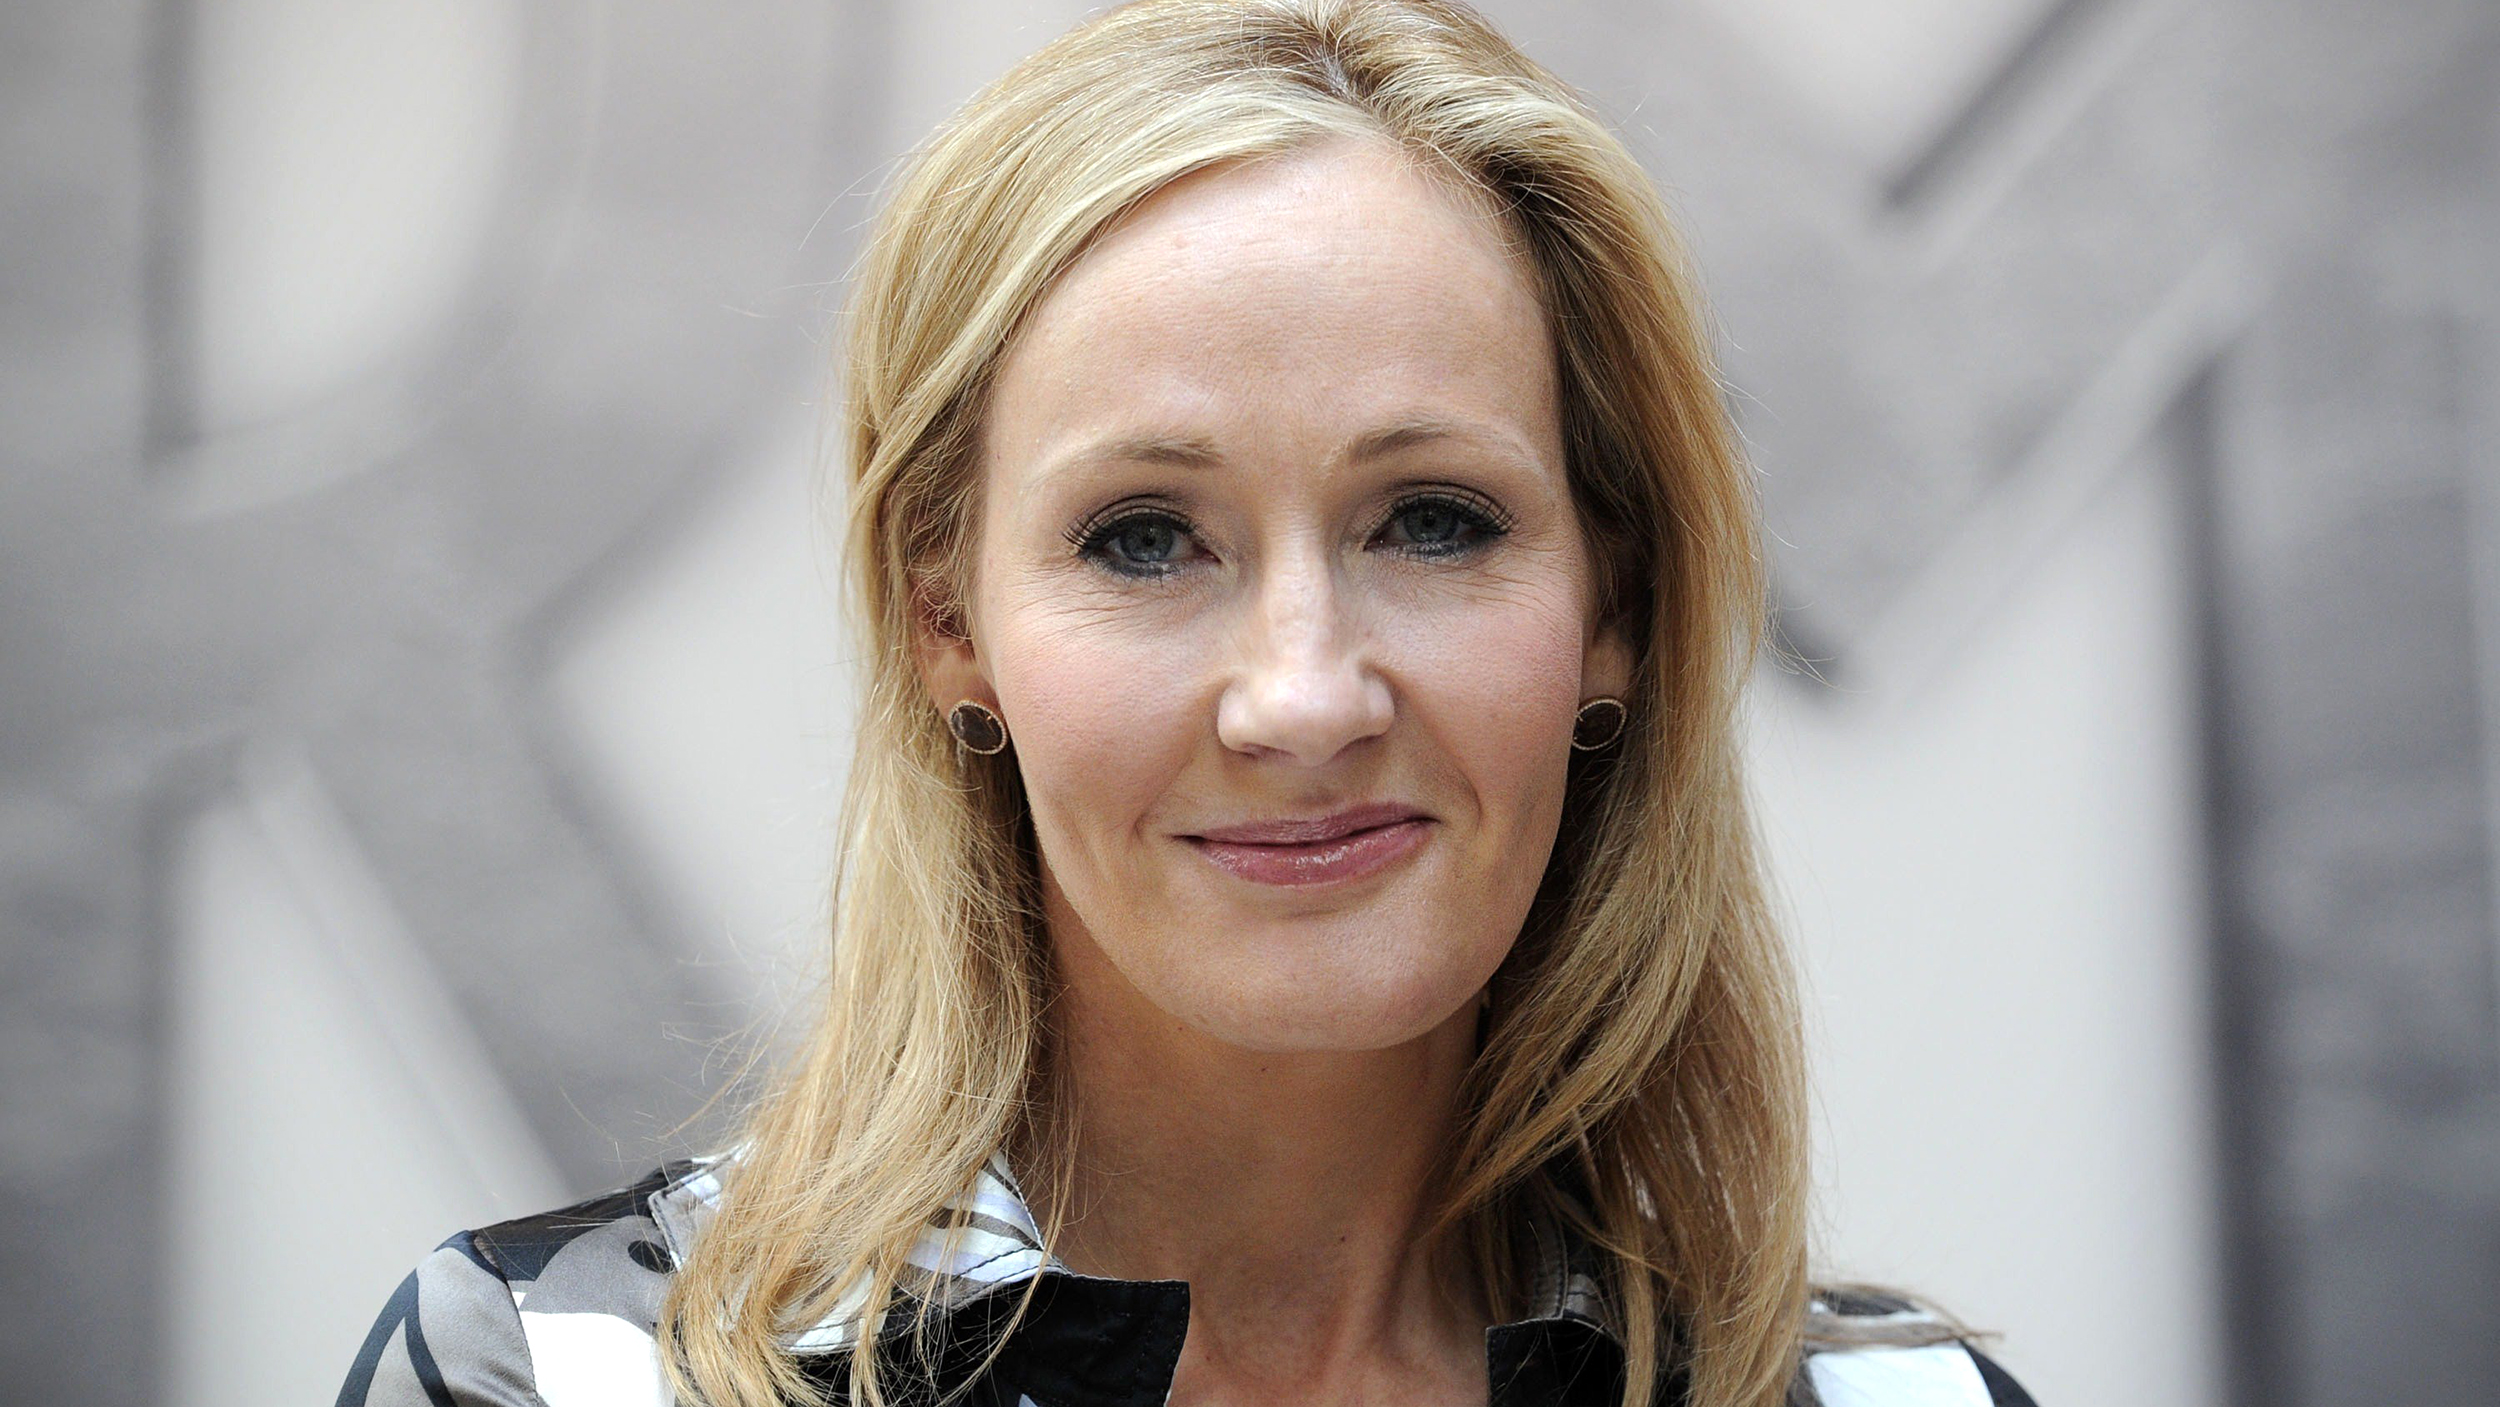 j k rowling finally apologizes for one of the most heartbreaking j k rowling finally apologizes for one of the most heartbreaking harry potter deaths com